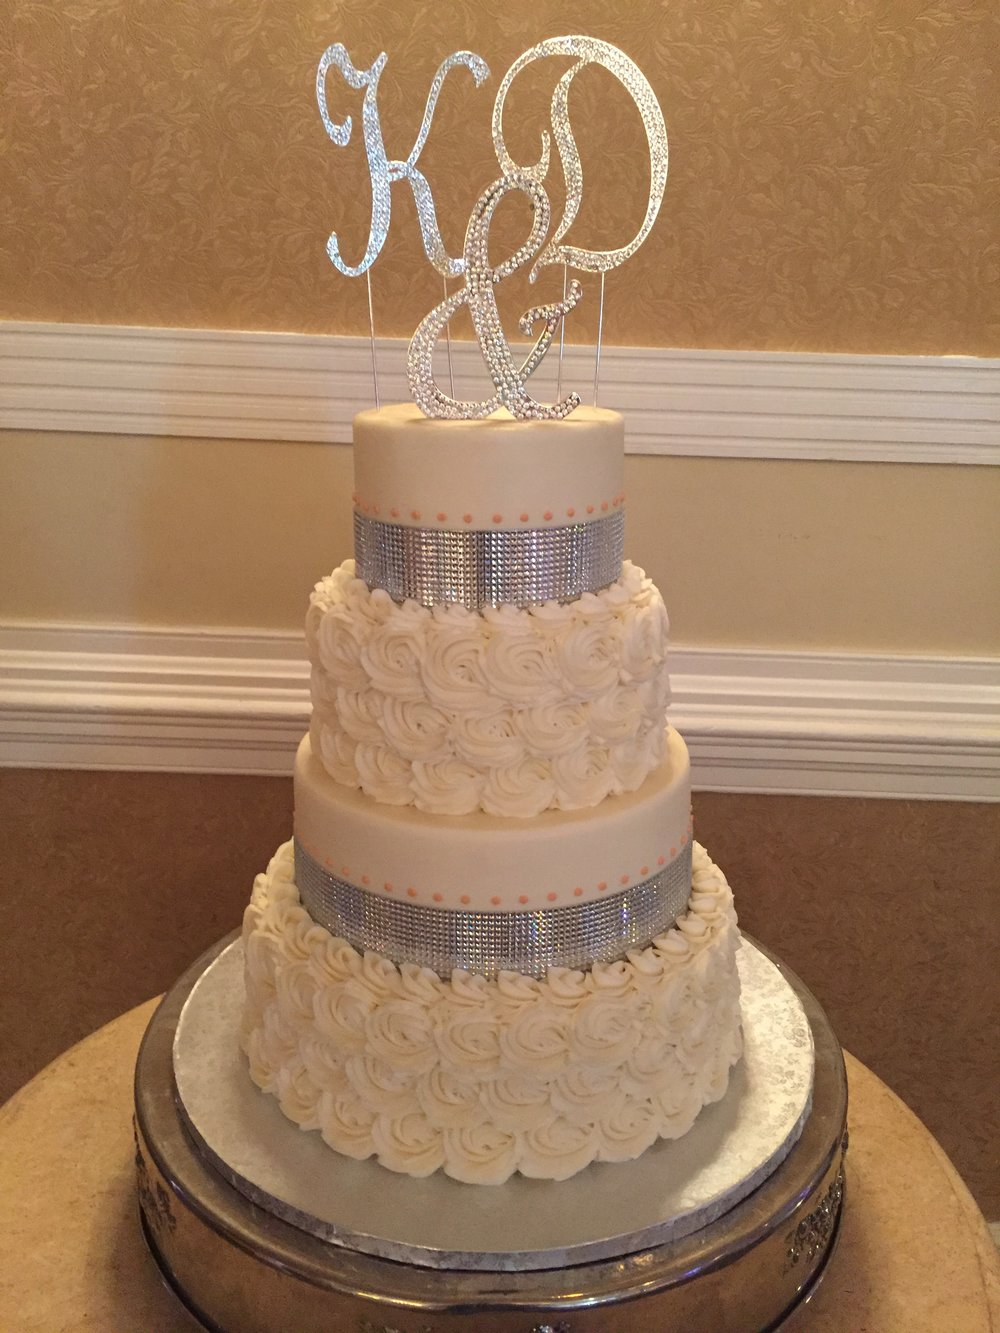 Silver with Peach Accents Wedding Cake